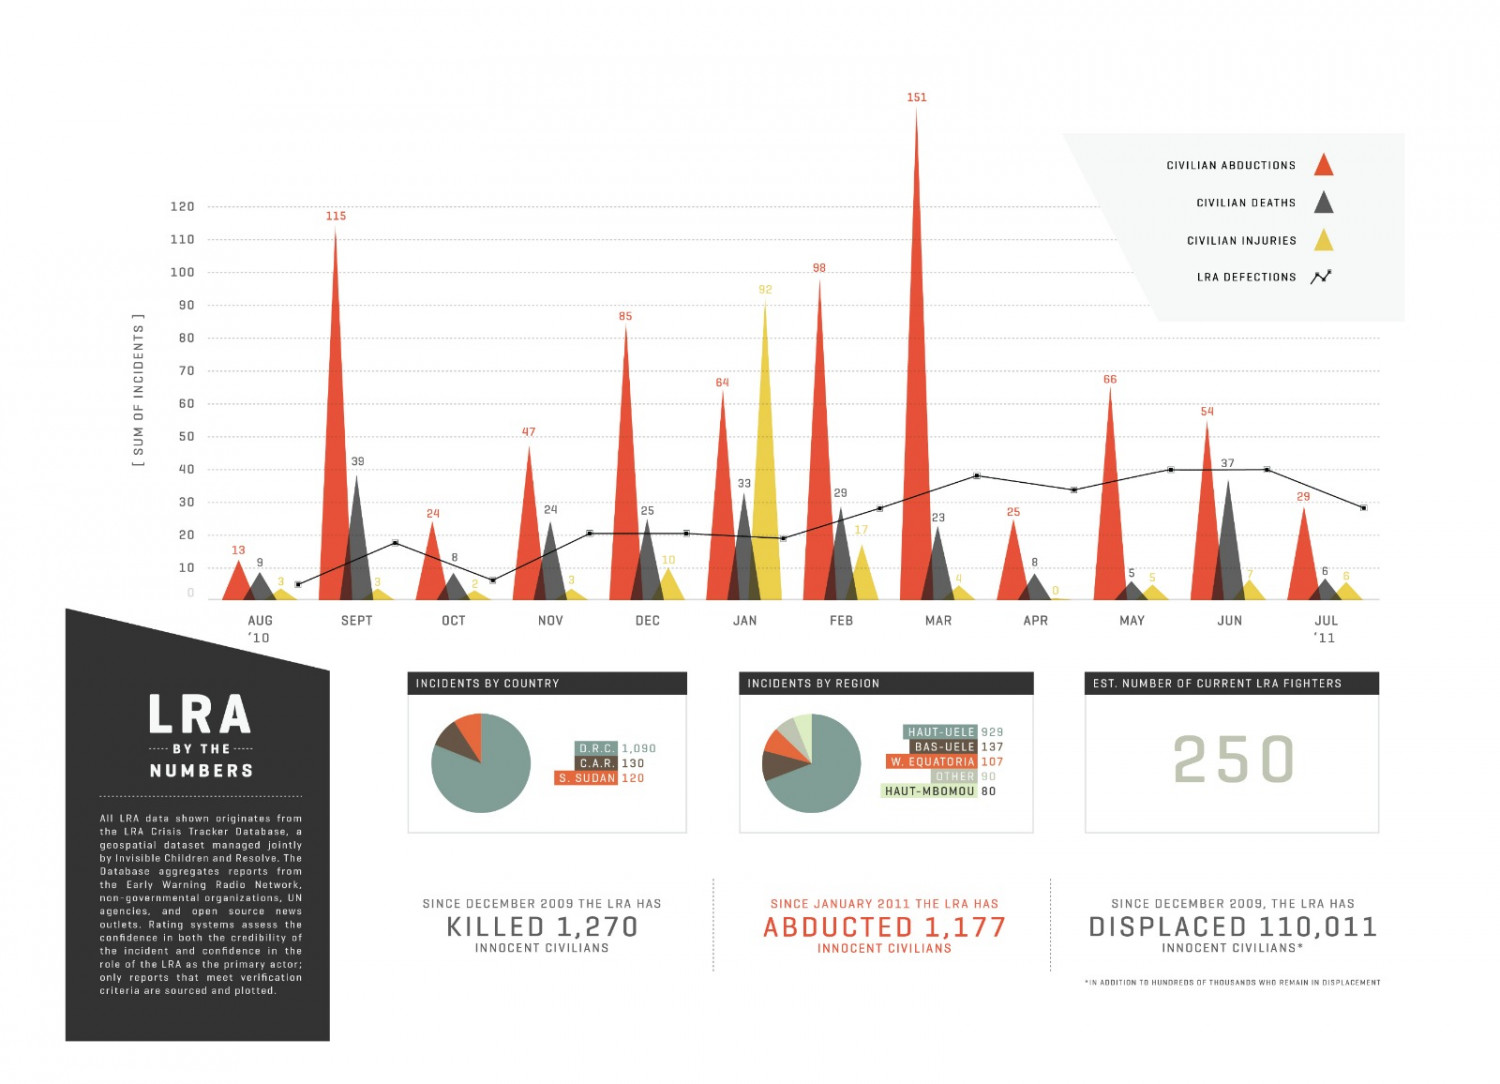 LRA by the numbers Infographic